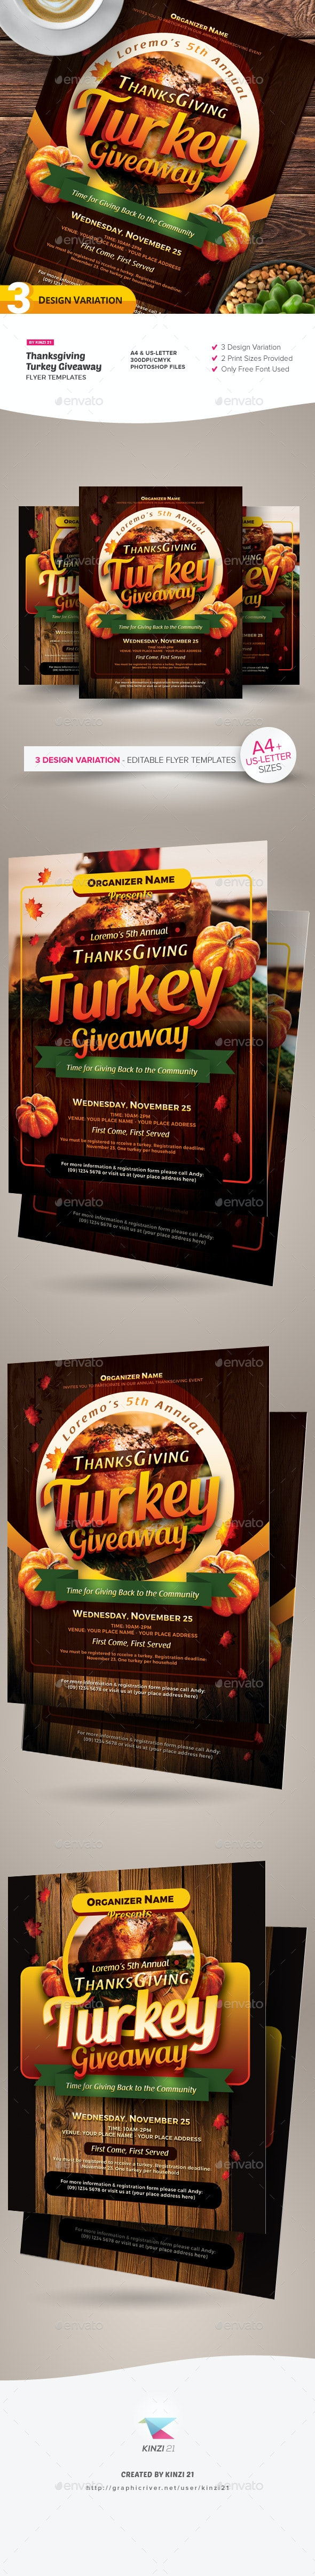 Thanksgiving Turkey Giveaway Flyer Templates - Holidays Events